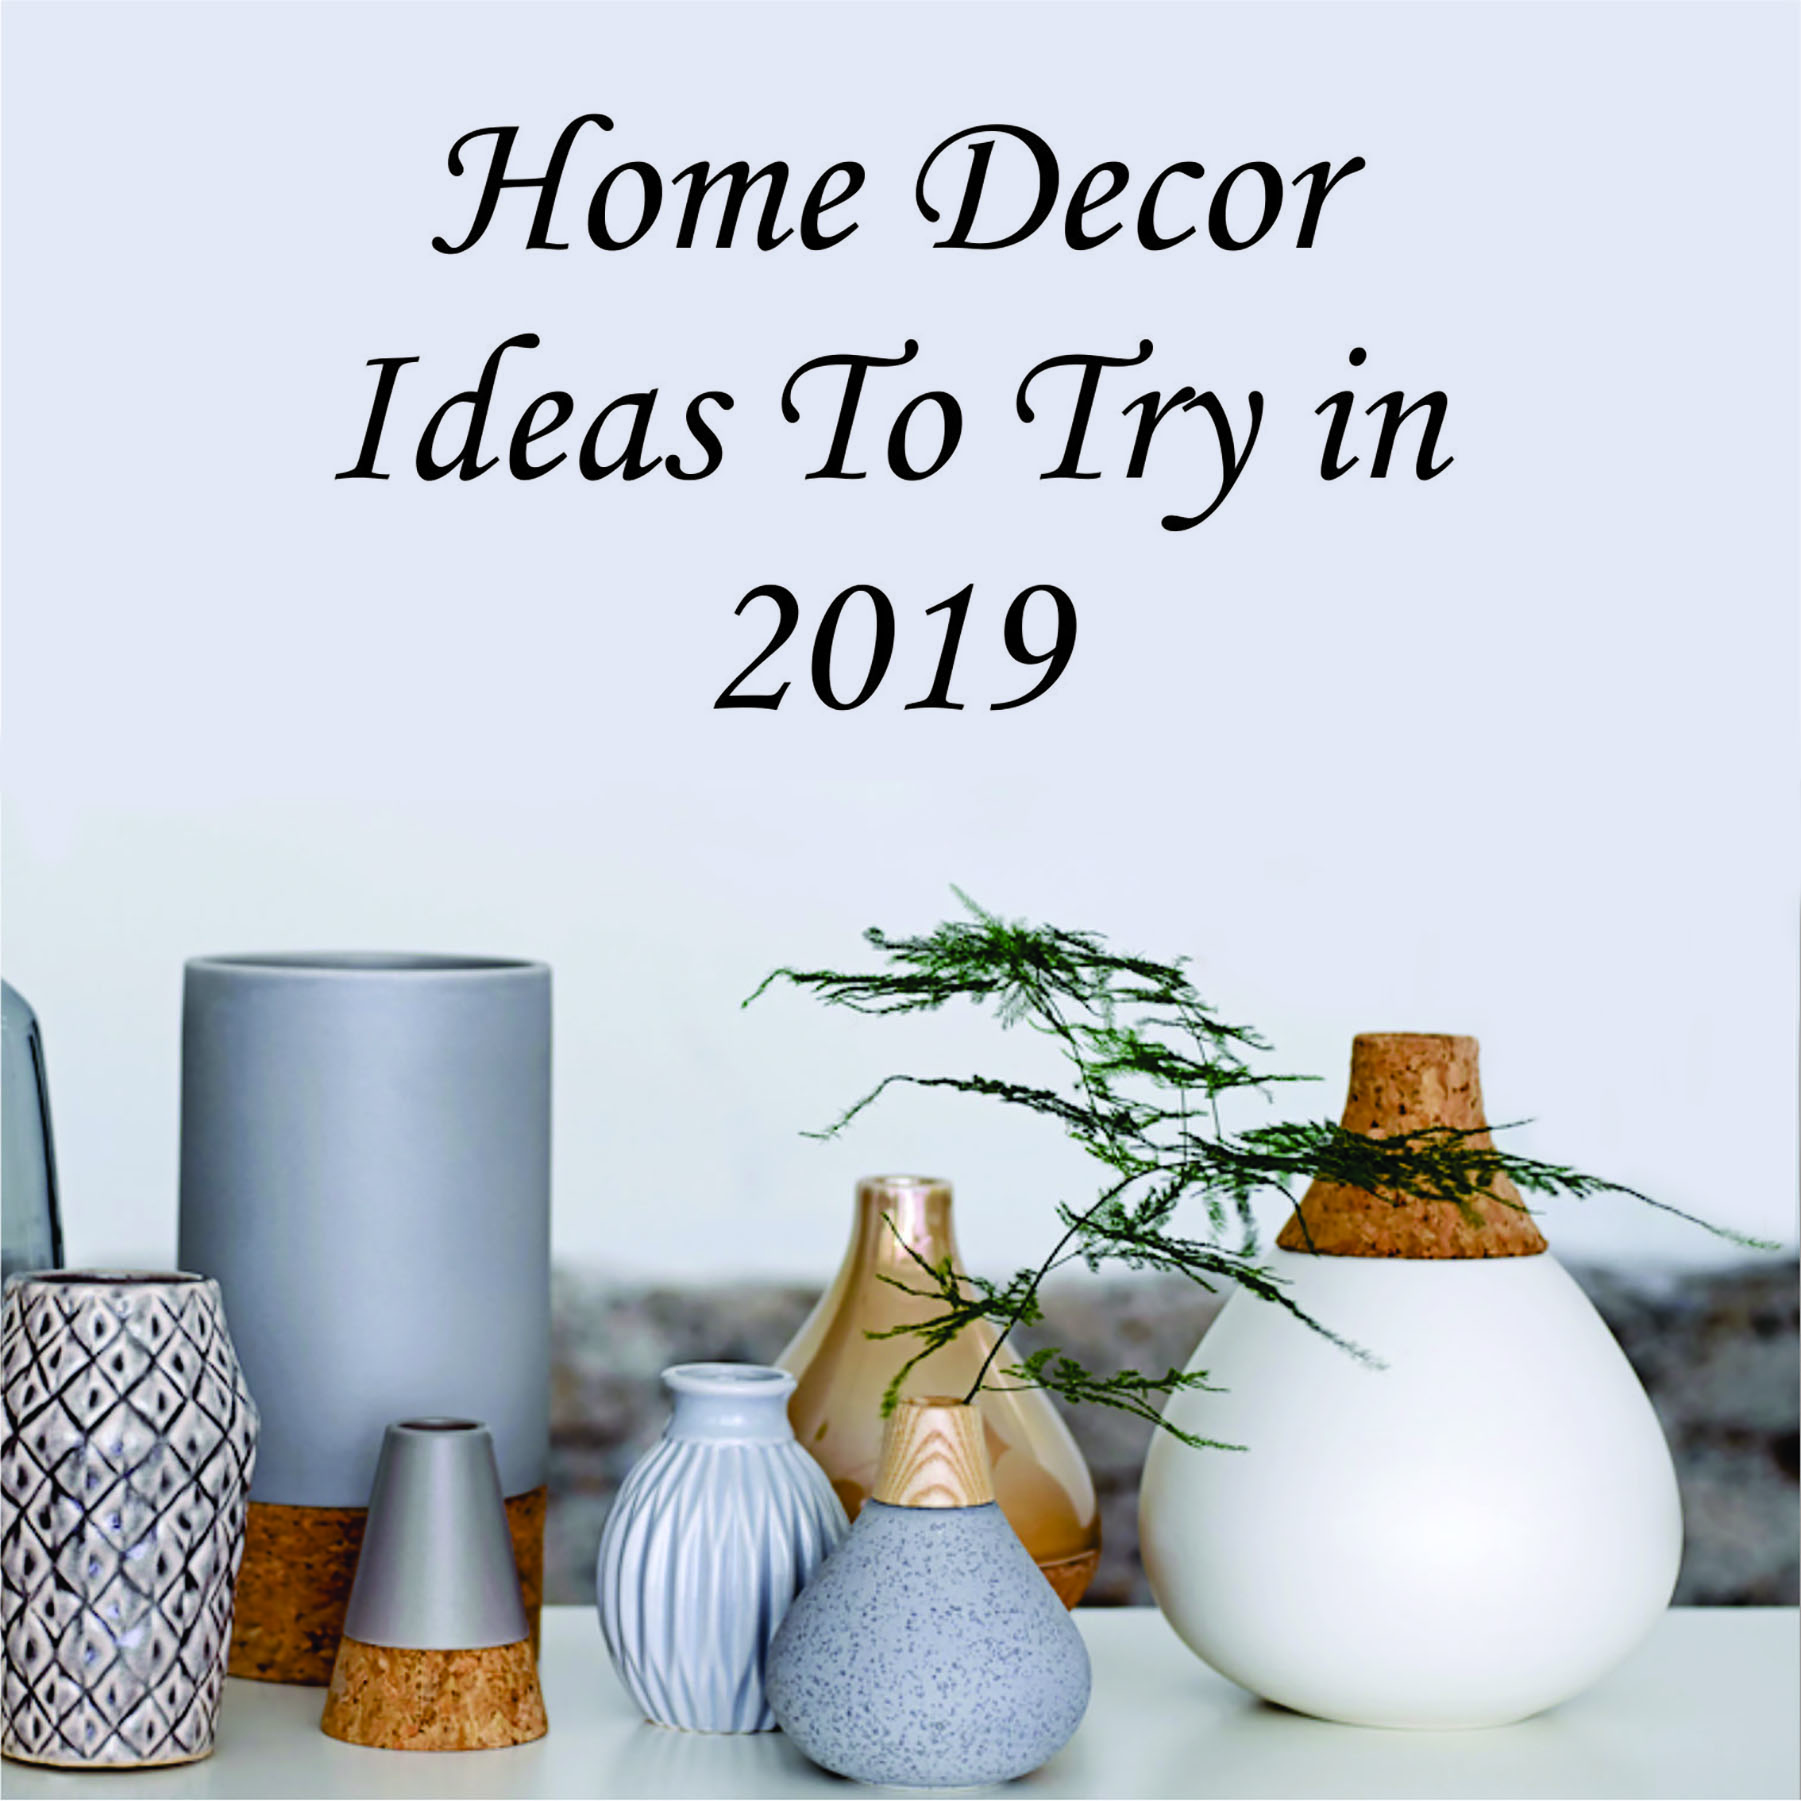 Home Decor Ideas To Try in 2019